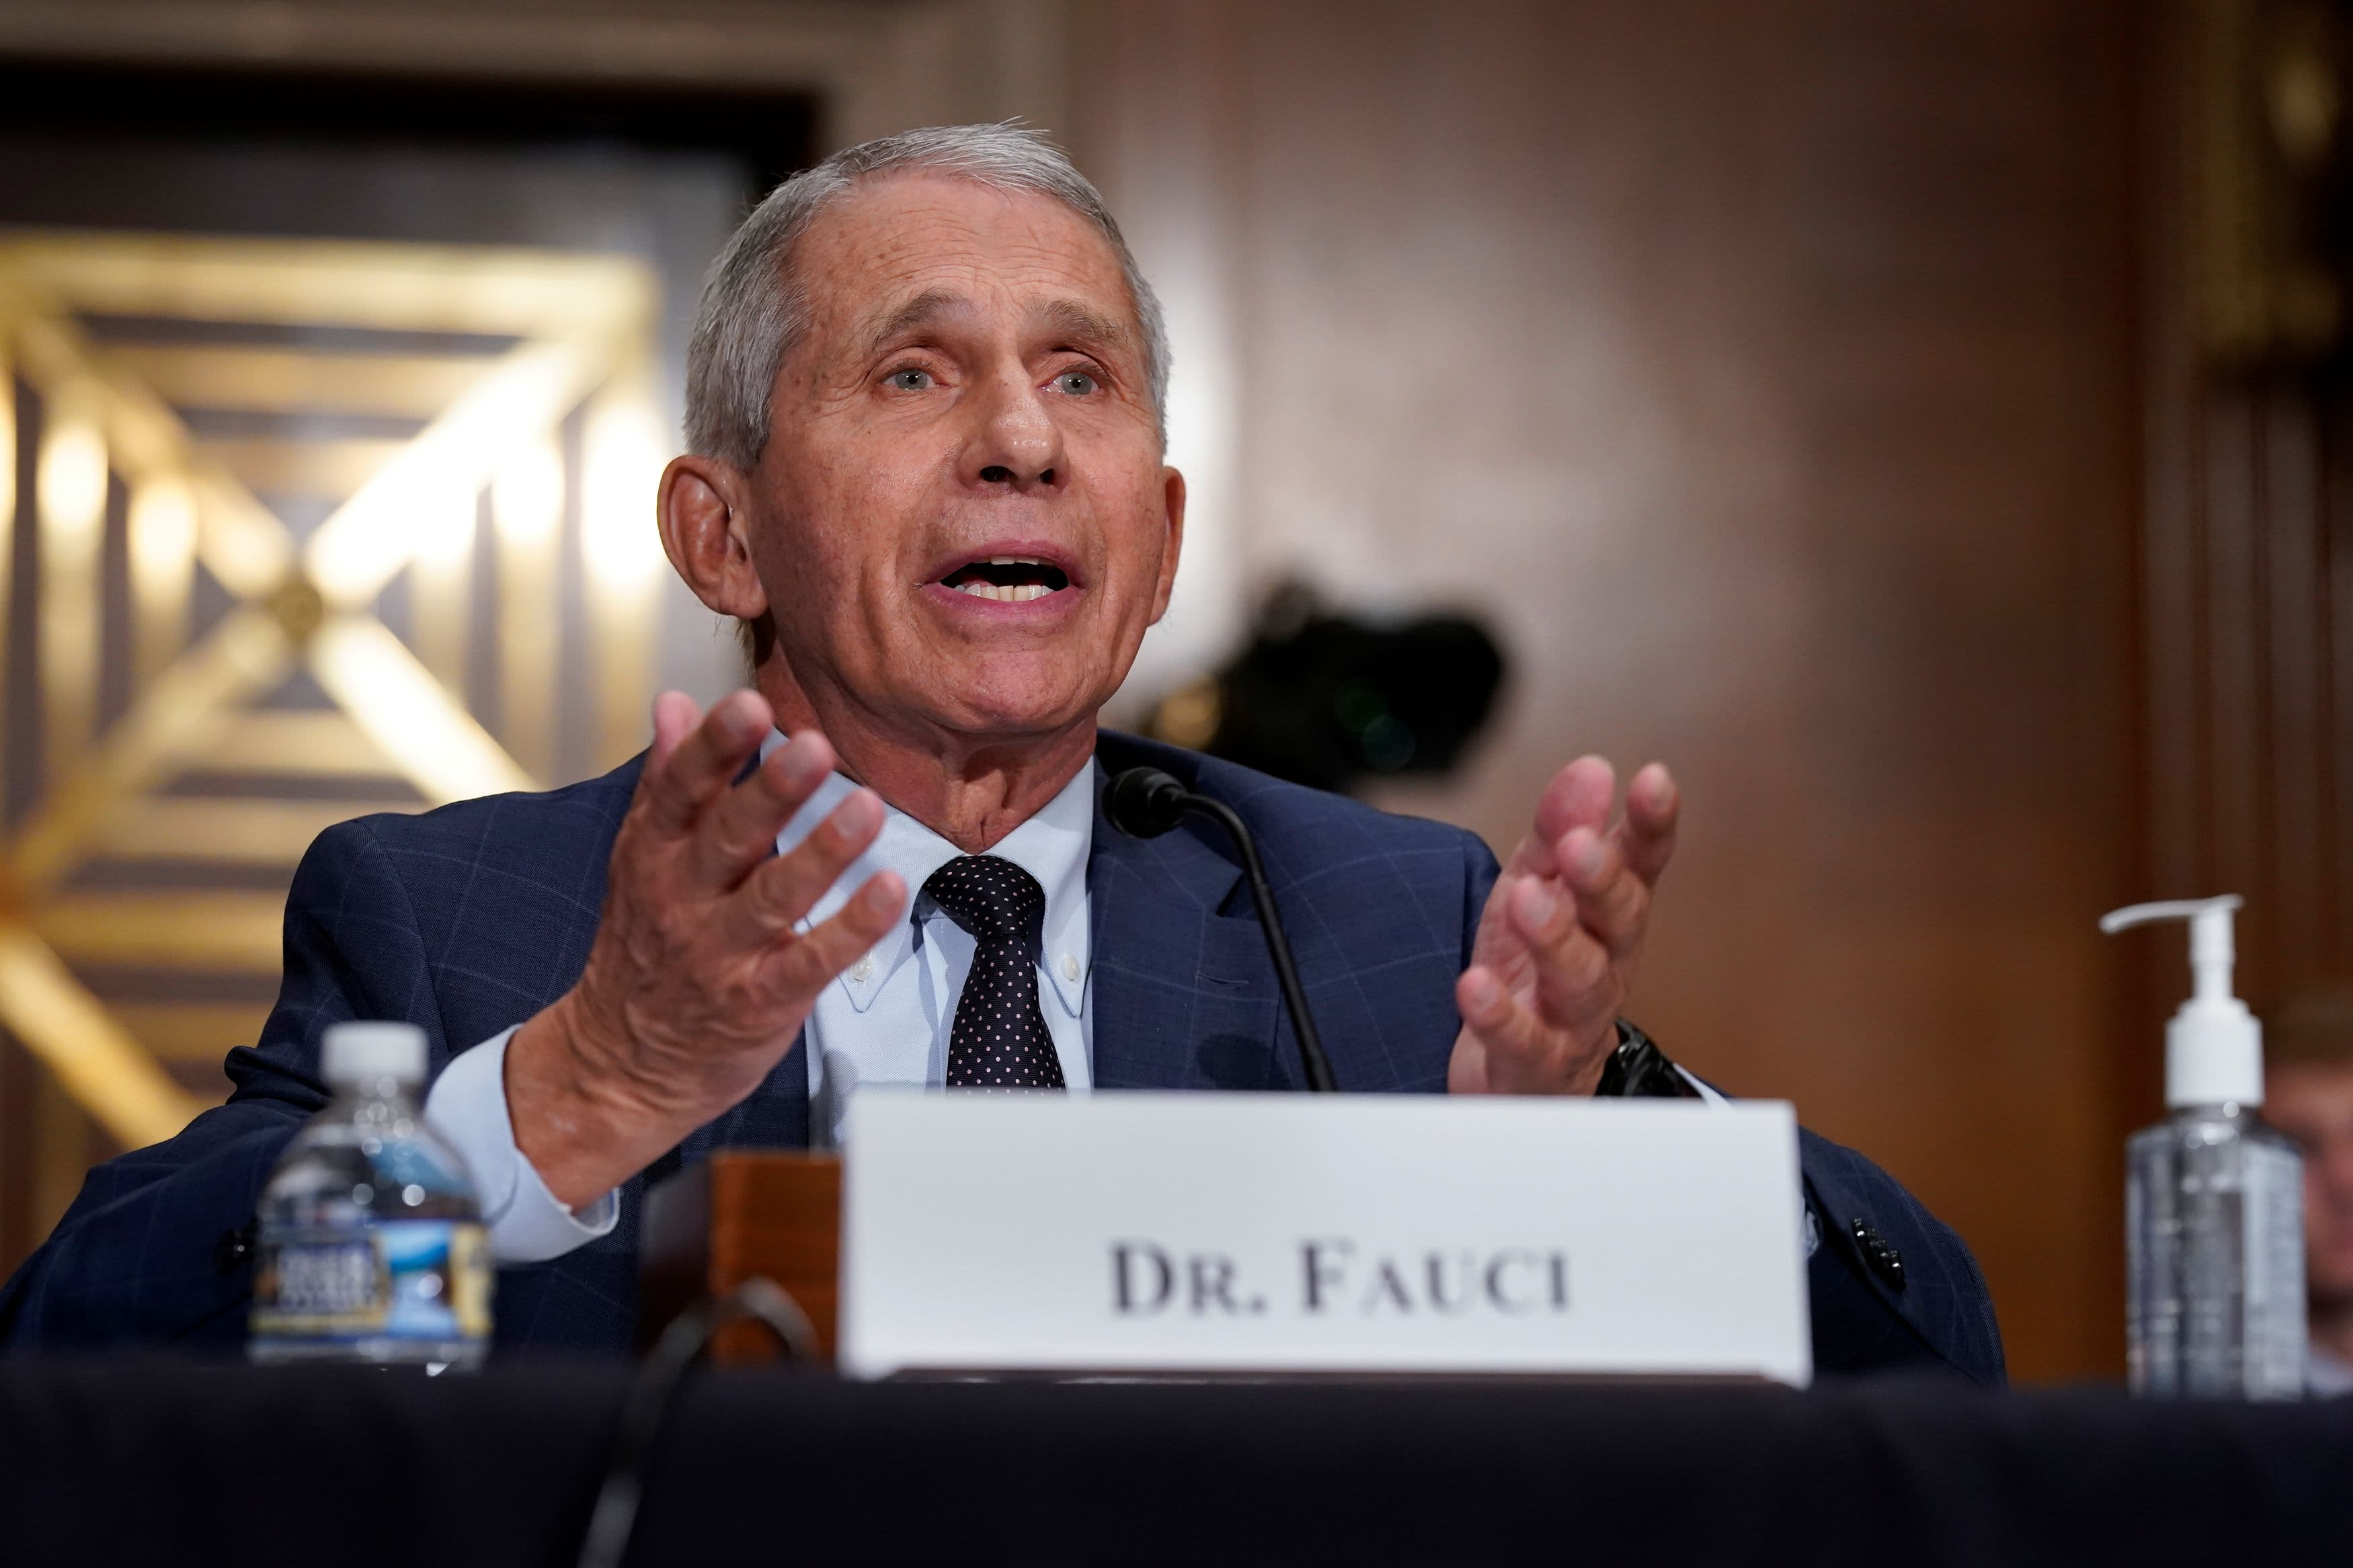 Epidemiologist agrees with Fauci, says everybody will someday 'likely' need a booster shot of the Covid vaccines